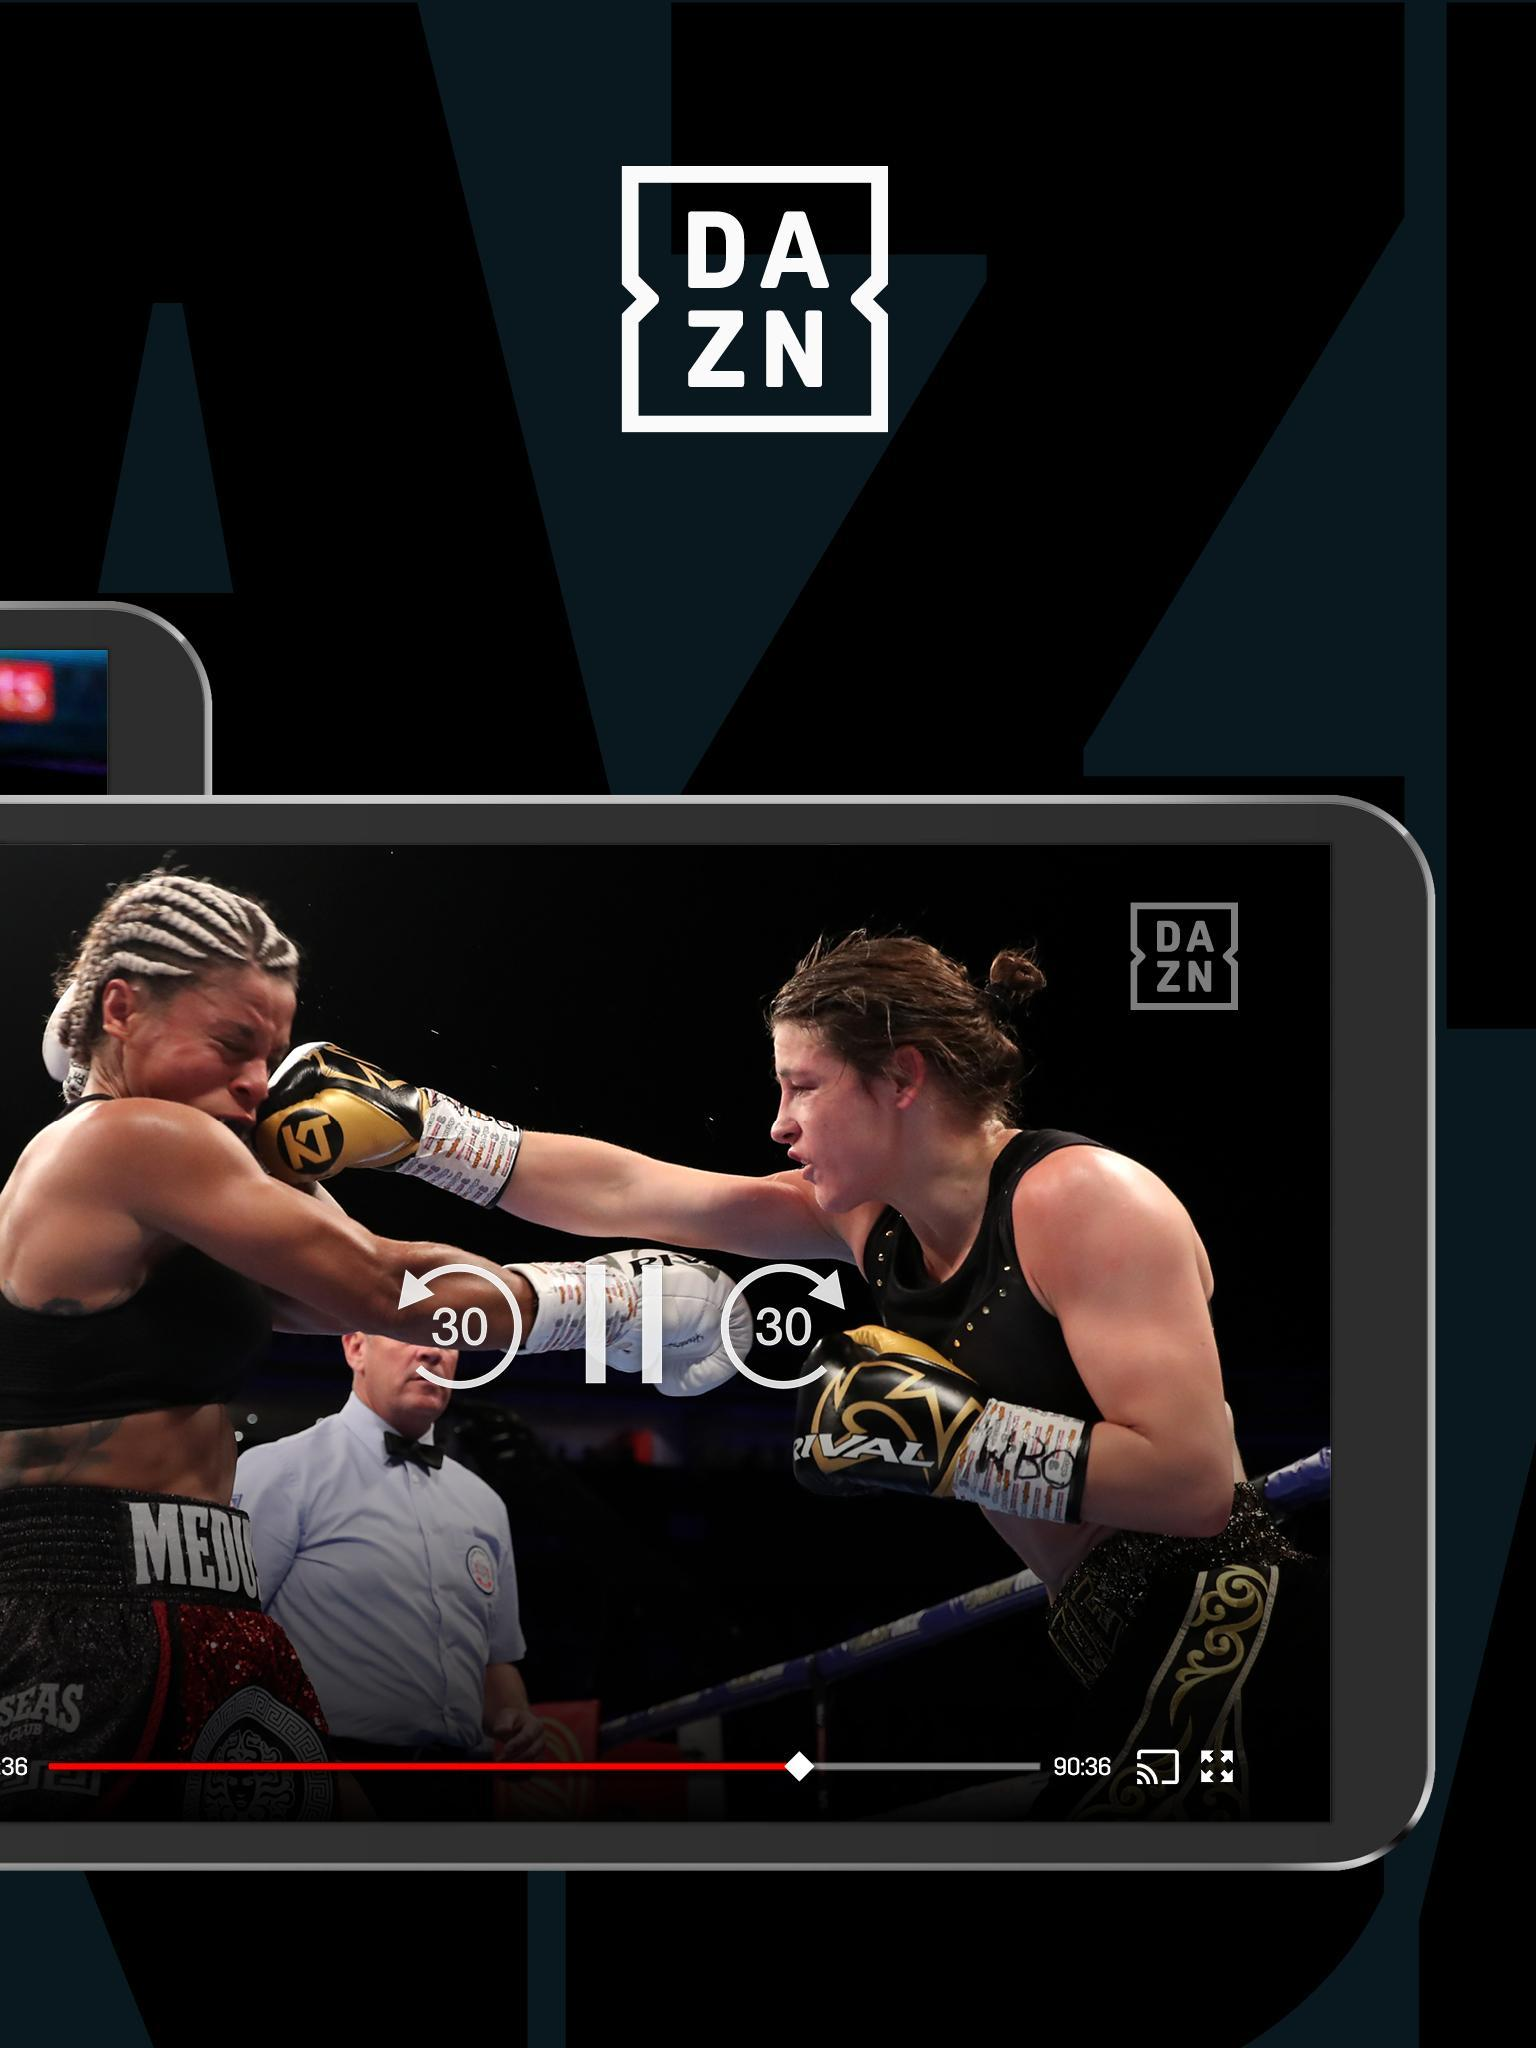 DAZN Live Fight Sports: Boxing, MMA & More 1.69.13 Screenshot 10